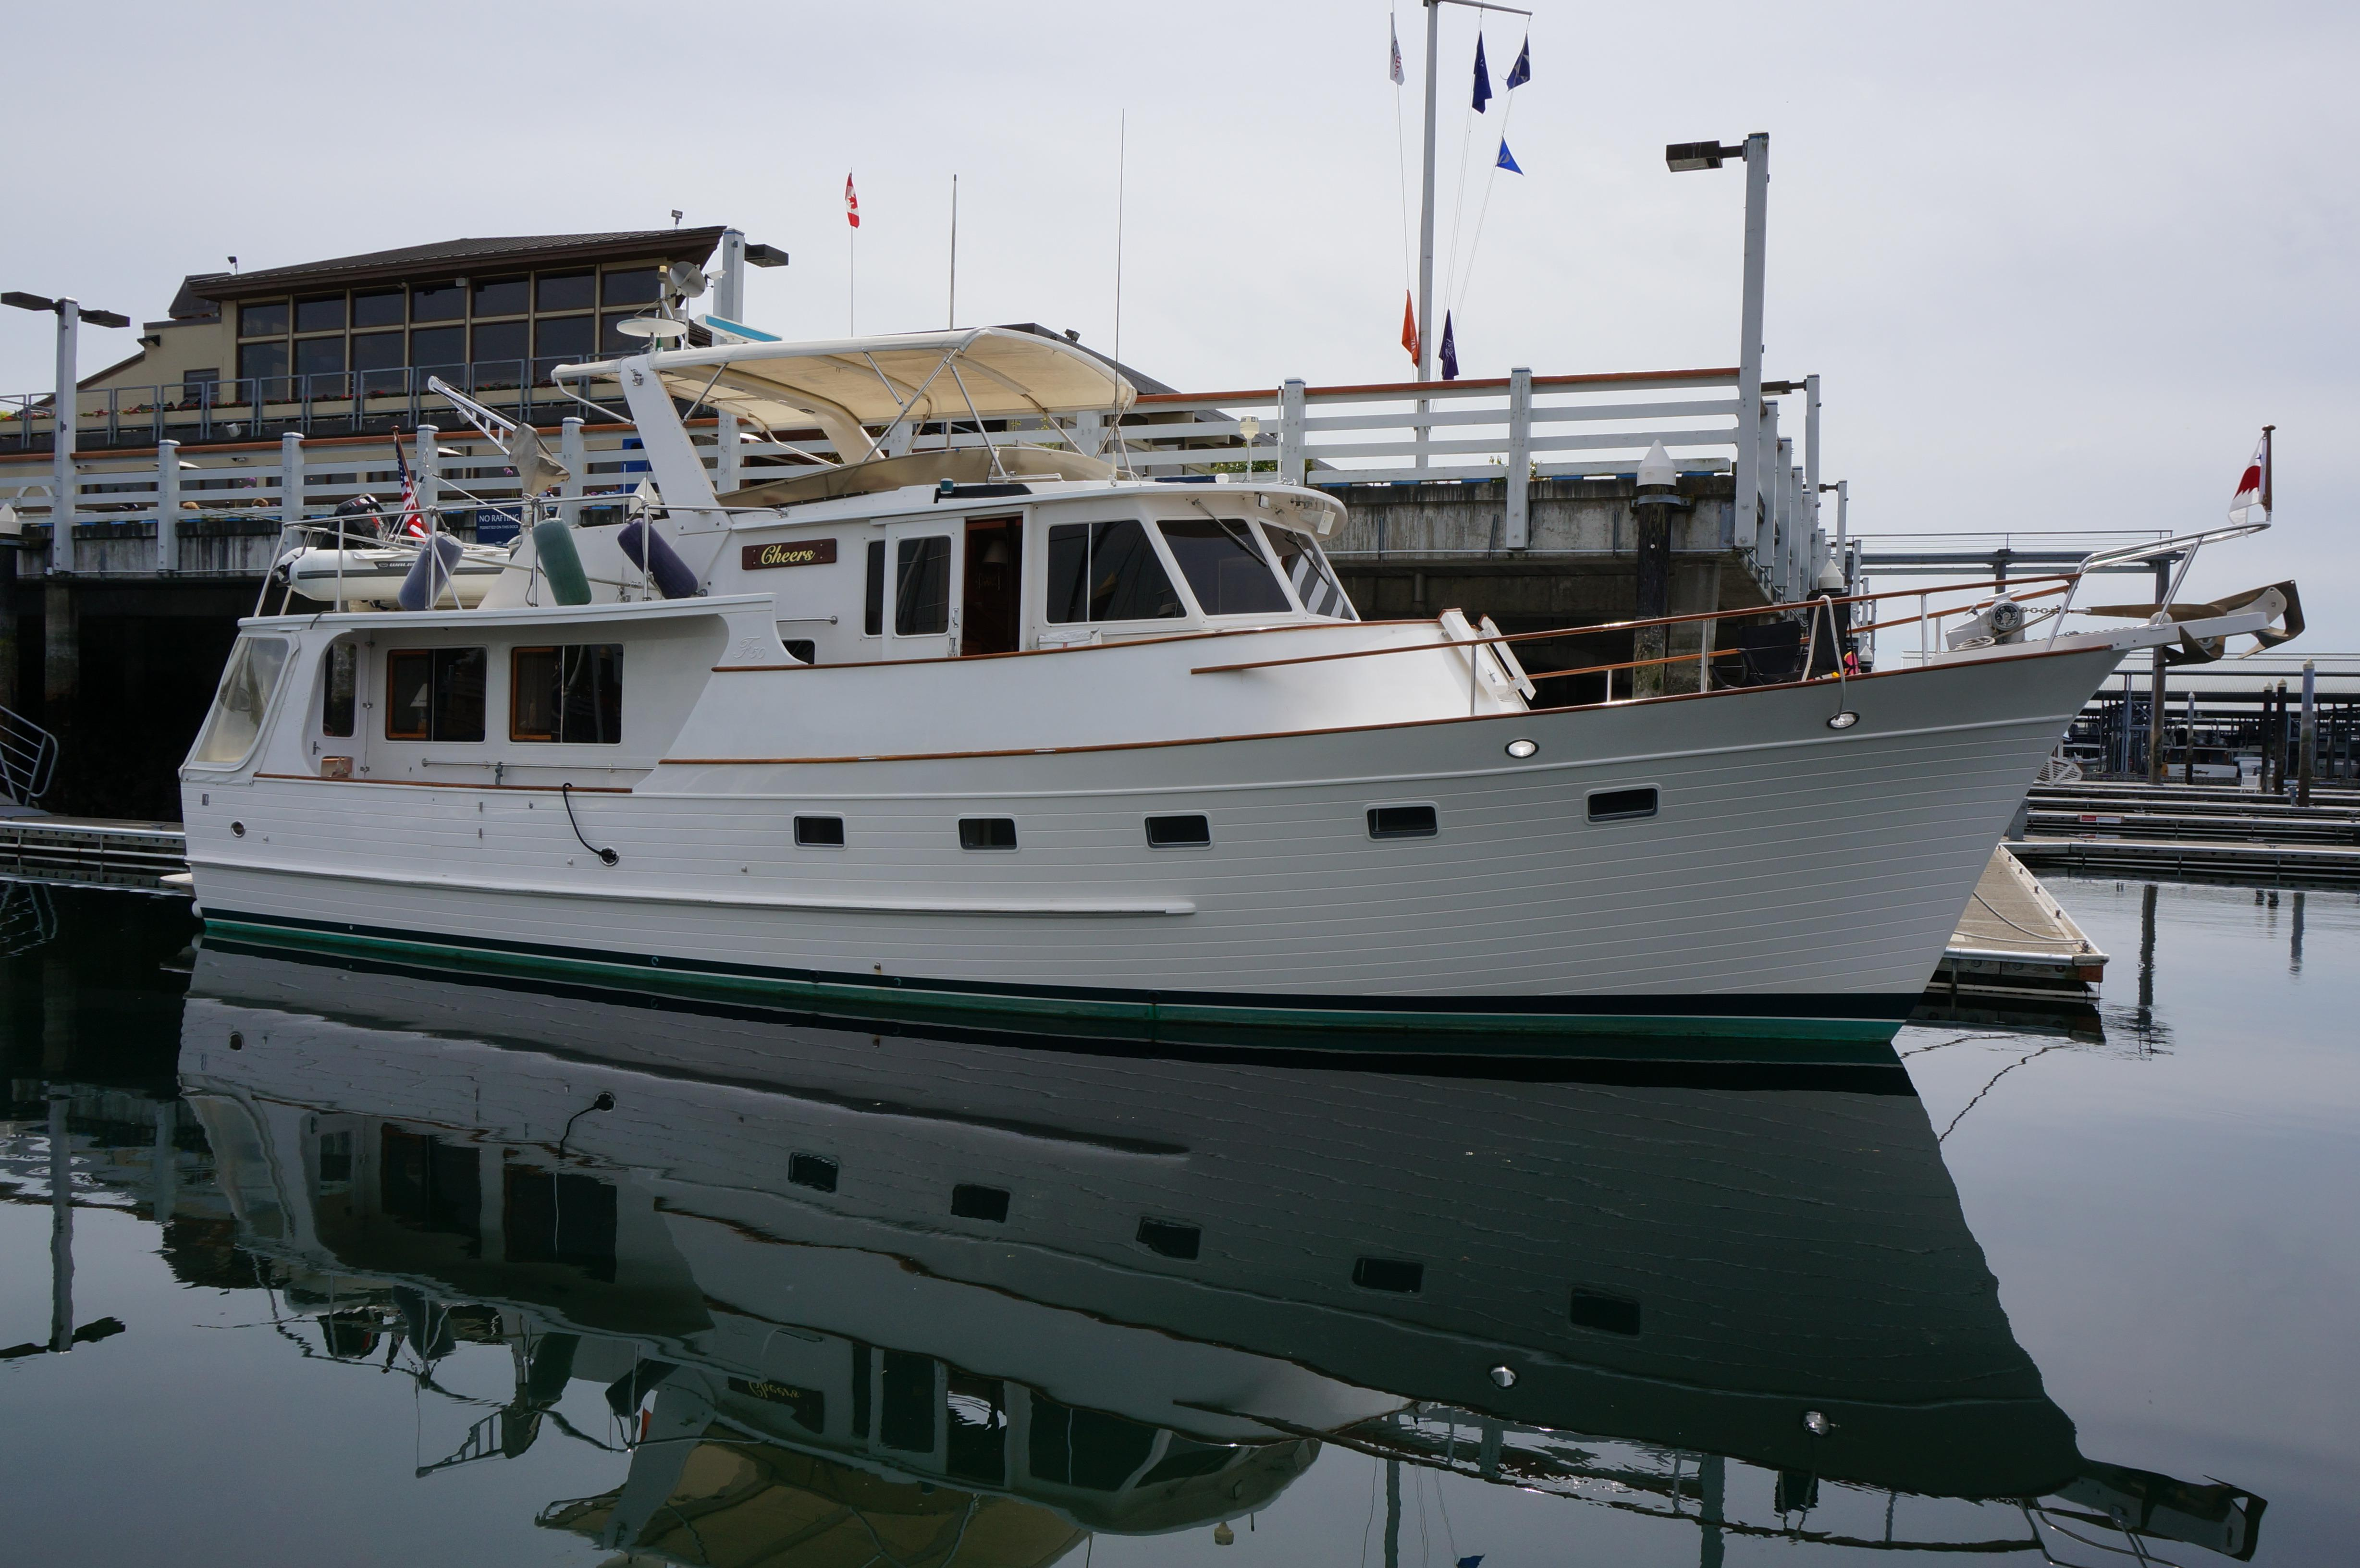 50 foot boats for sale in wa boat listings for 50 ft motor yachts for sale